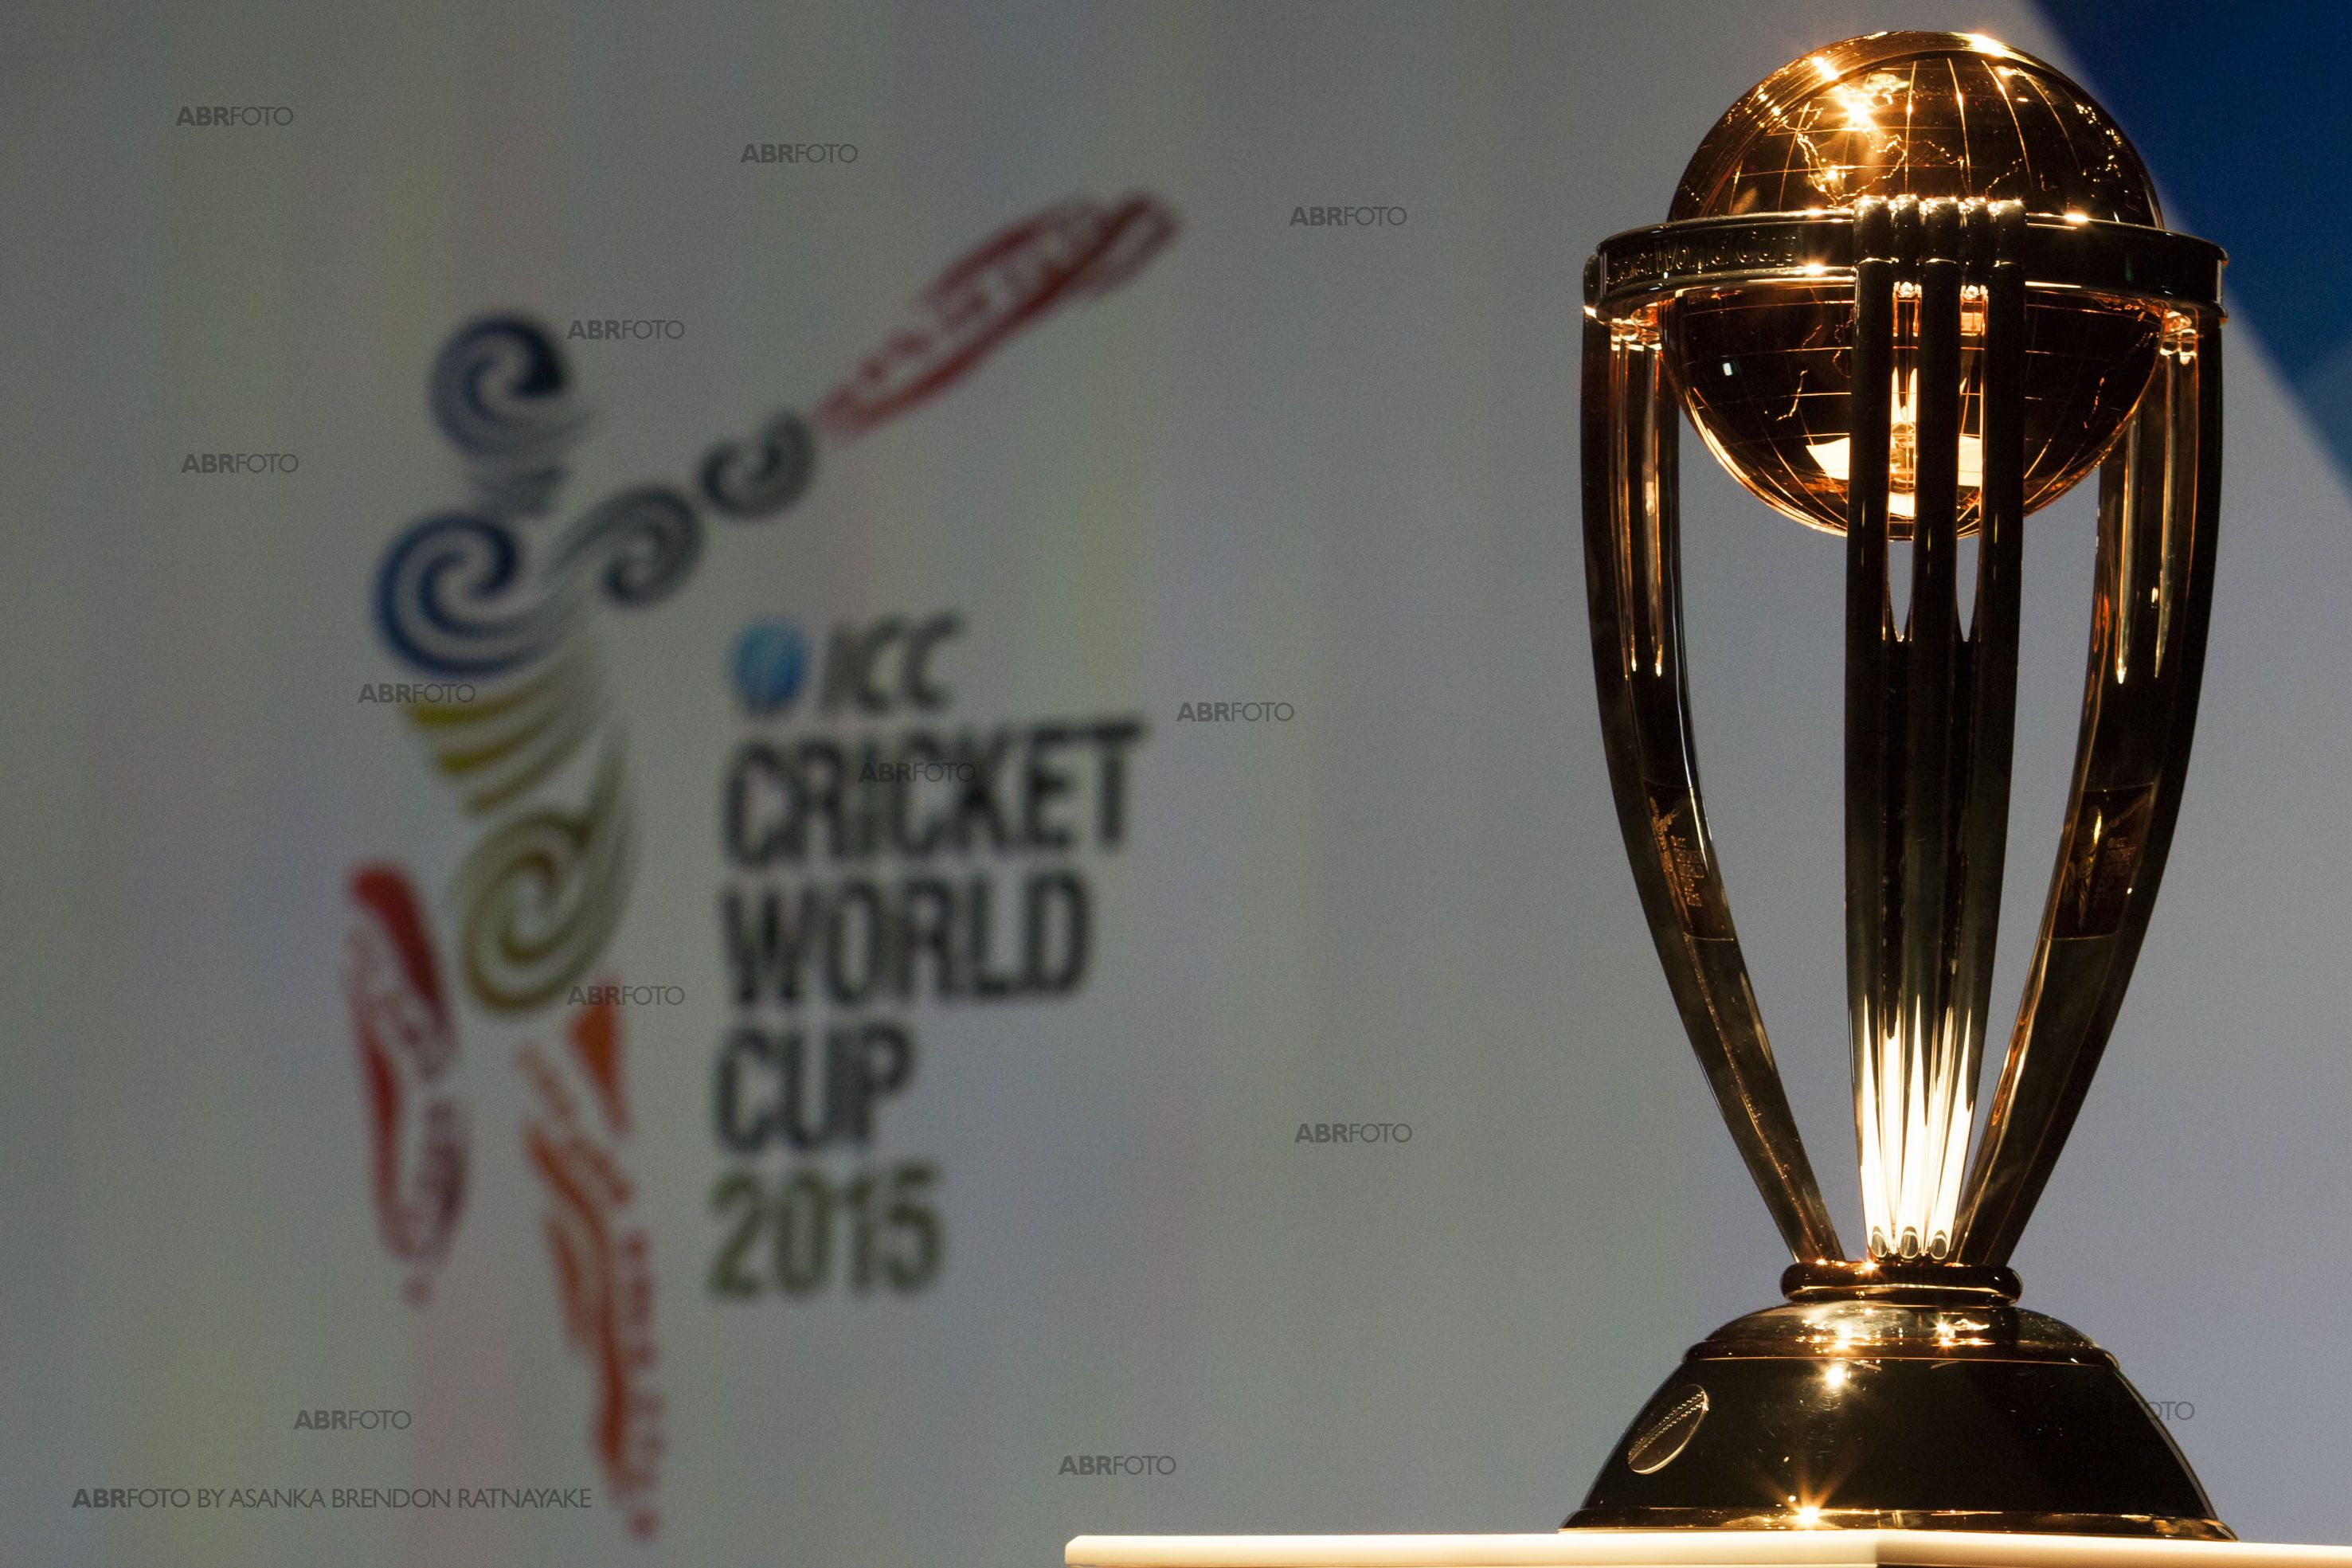 Cricket world cup trophy 2015